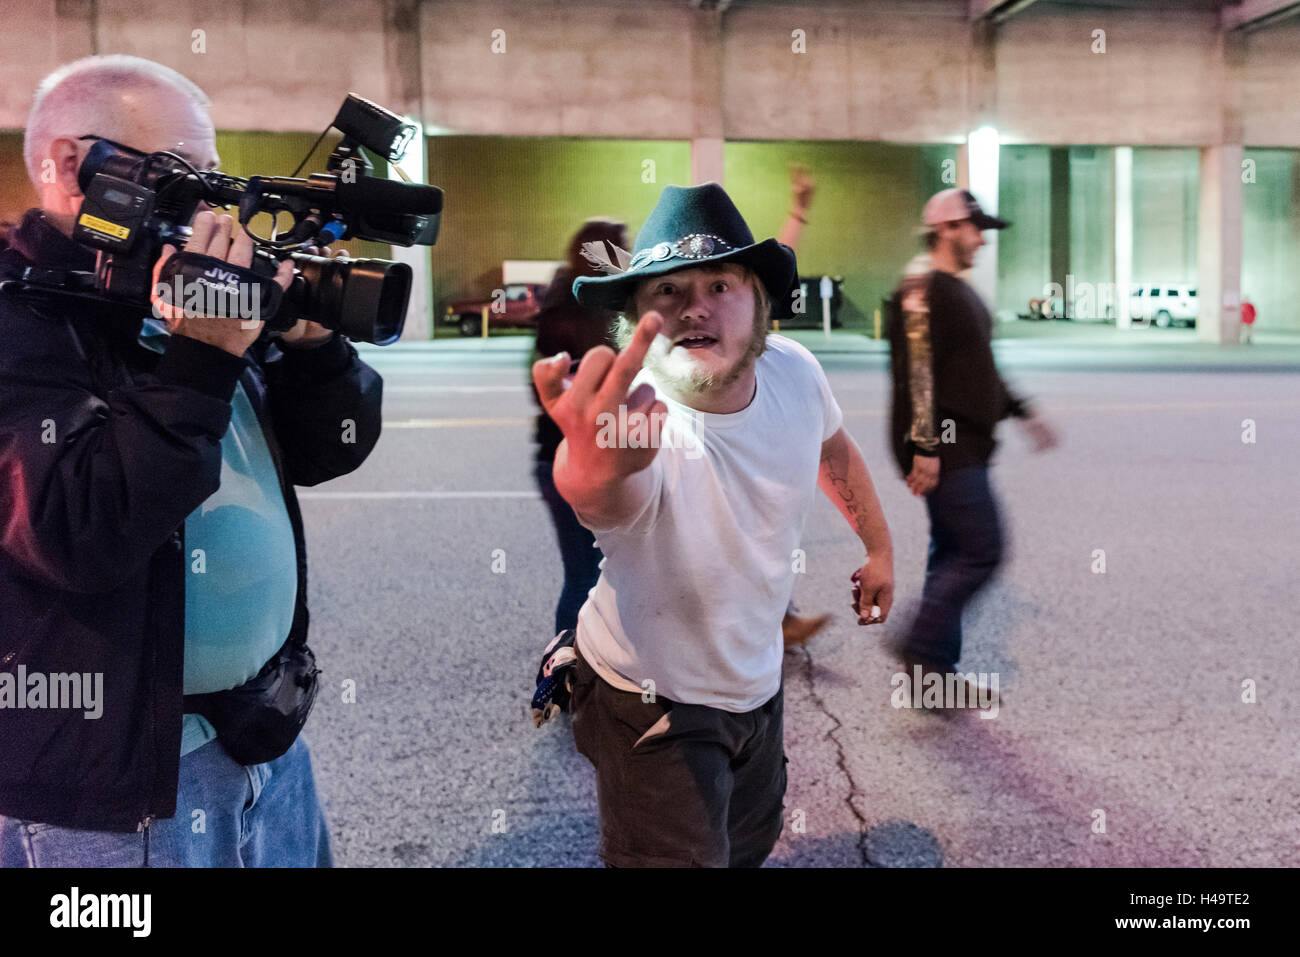 Cincinnati, OH, USA. 13th October, 2016. A trump supporter shows me the middle finger for photographing the event. - Stock Image